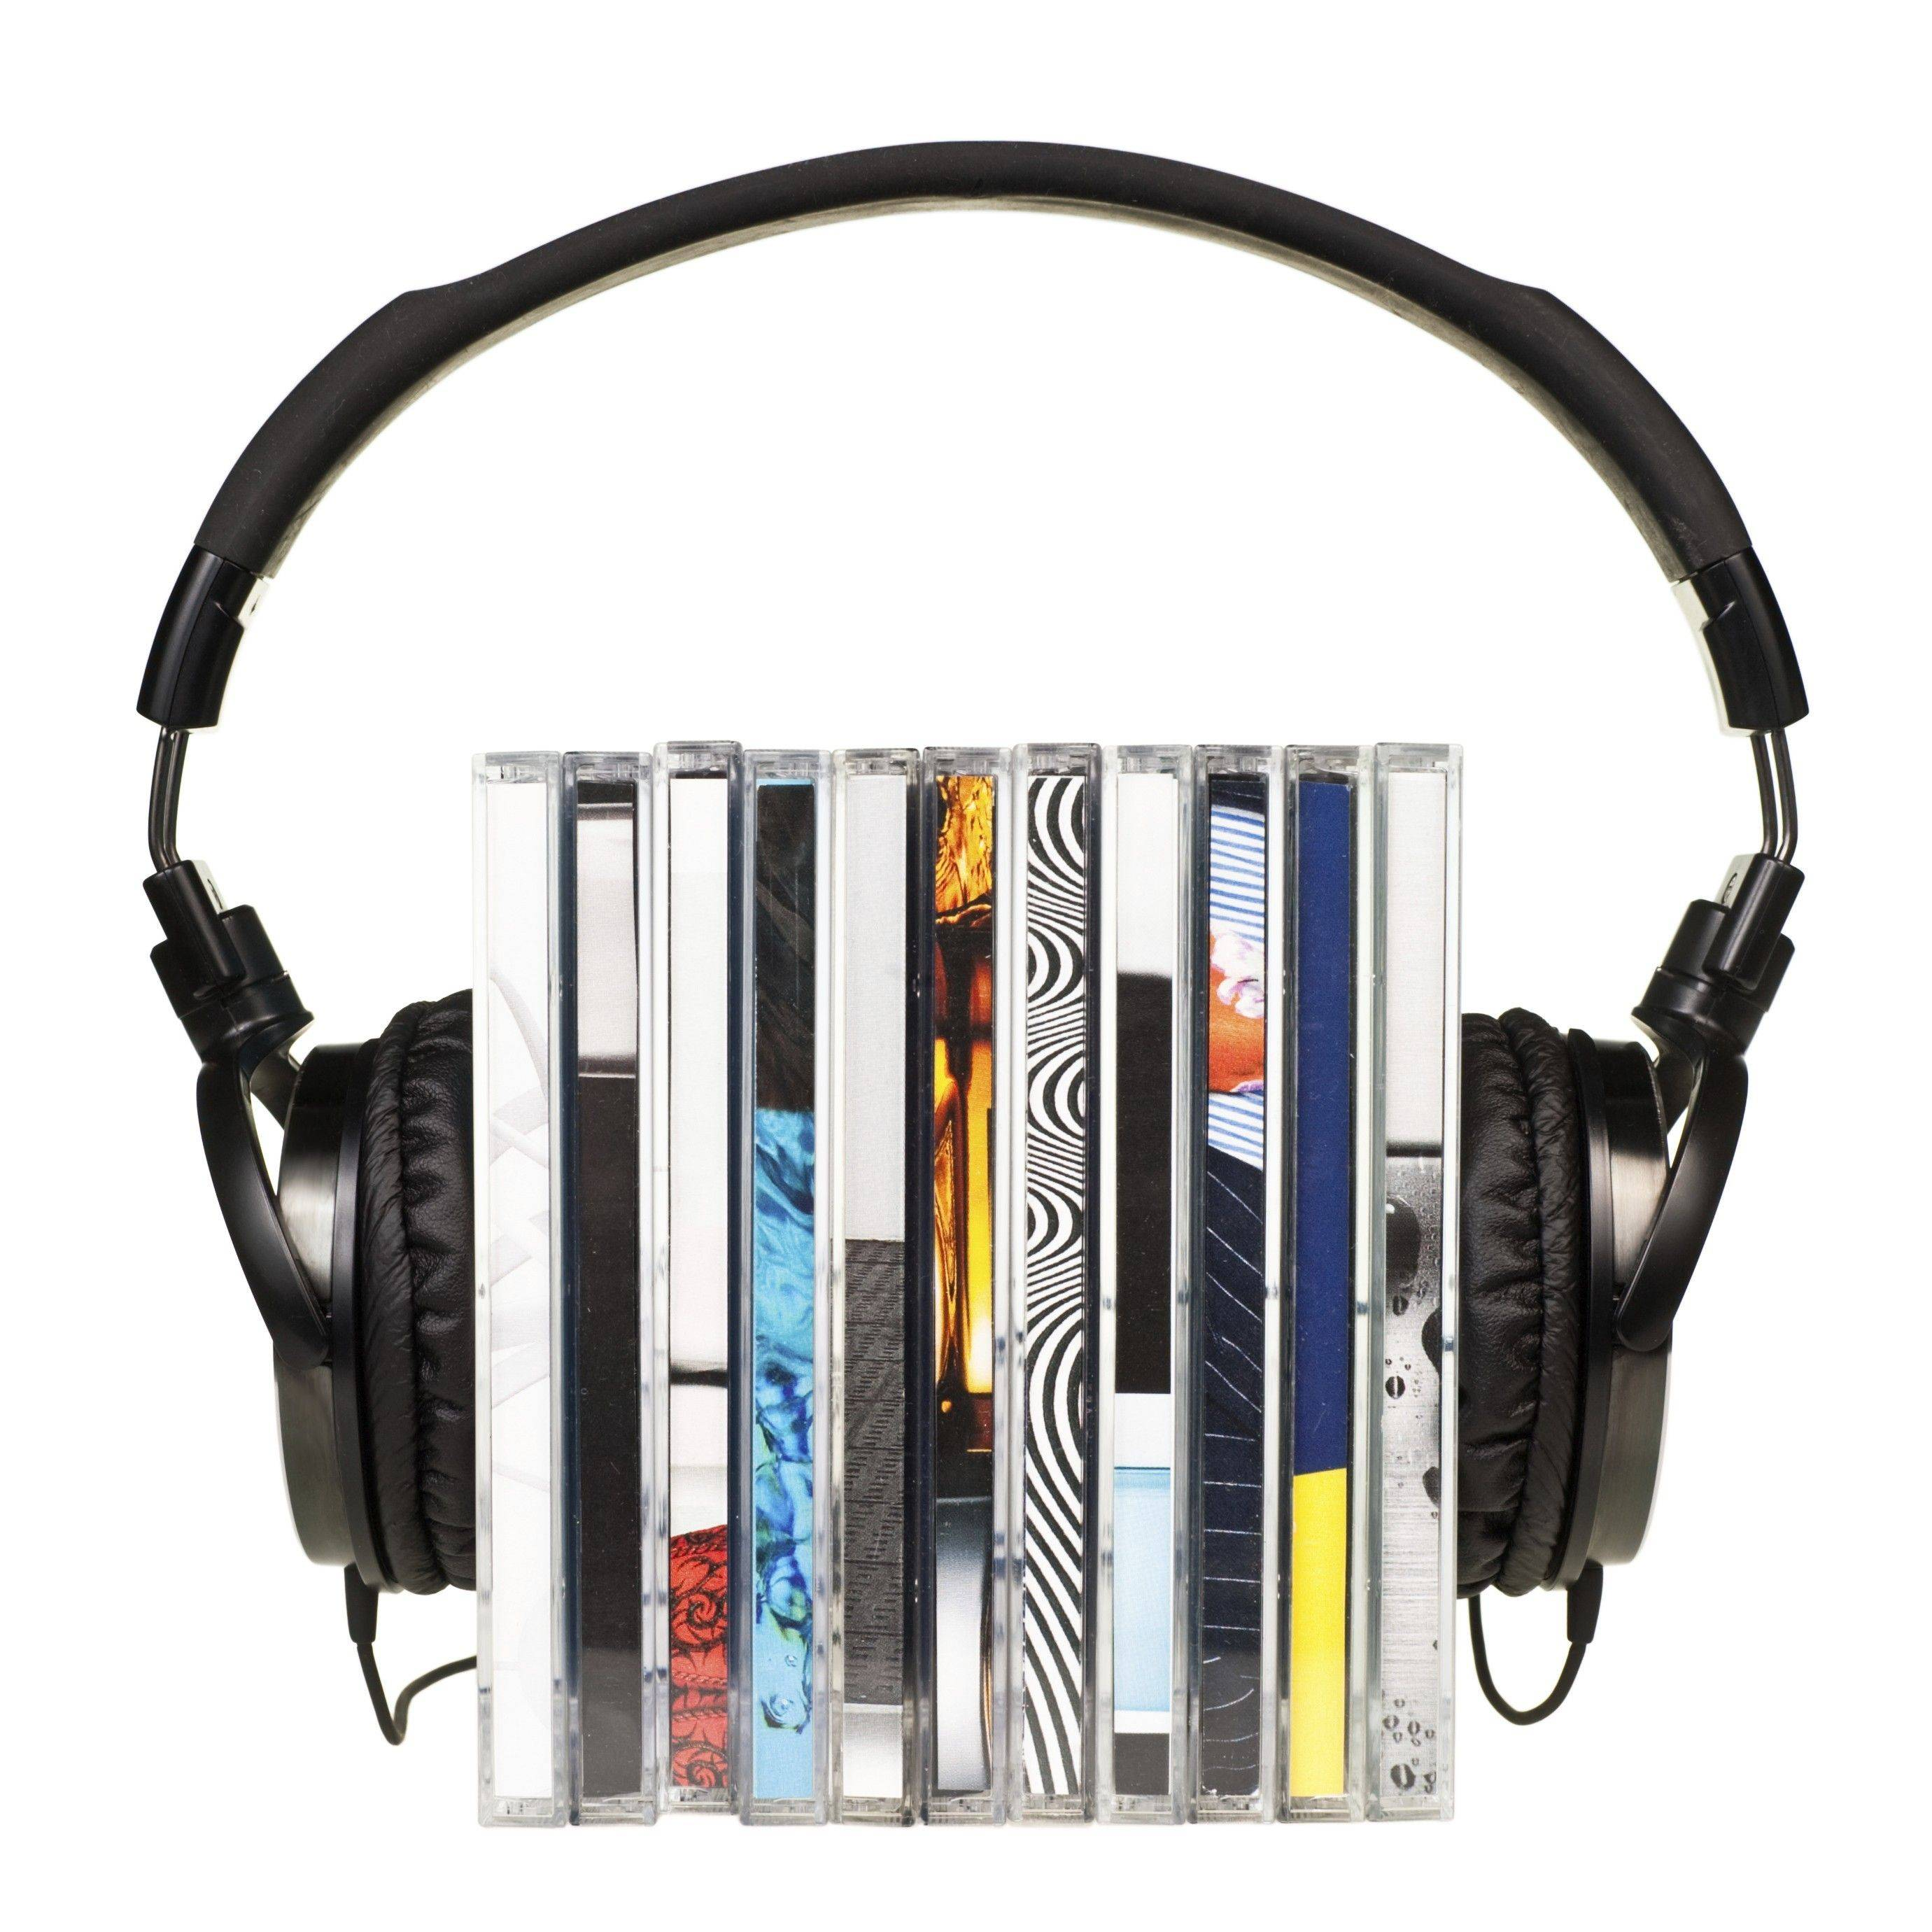 We're buying fewer physical CDs these days and purchasing more music online, according to Nielsen SoundScan.